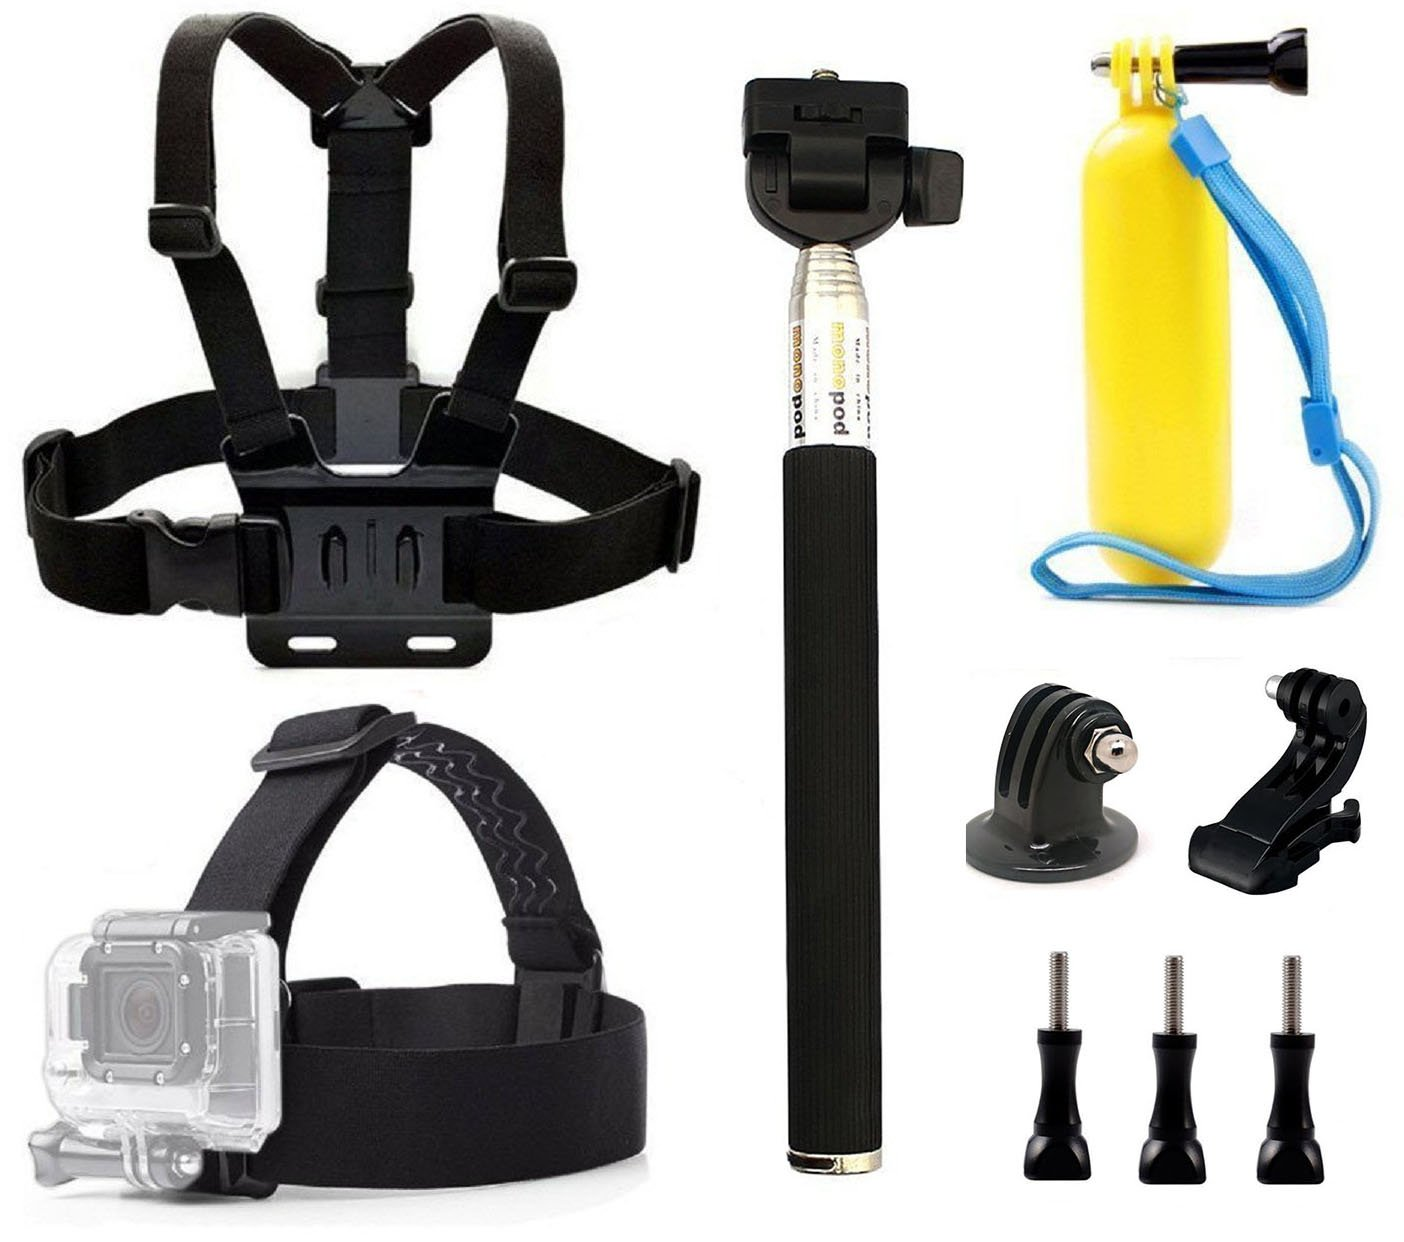 dOvOb GoPro Accessories Kits included Head Strap + Chest Belt Strap +Handle Monopod +Floating Hand Grip for Gopro Hero 6/YI 4K/AKASO V50/Campark/Crosstour/Dbpower/APEMAN/Victure/Lightdow/vikeepro